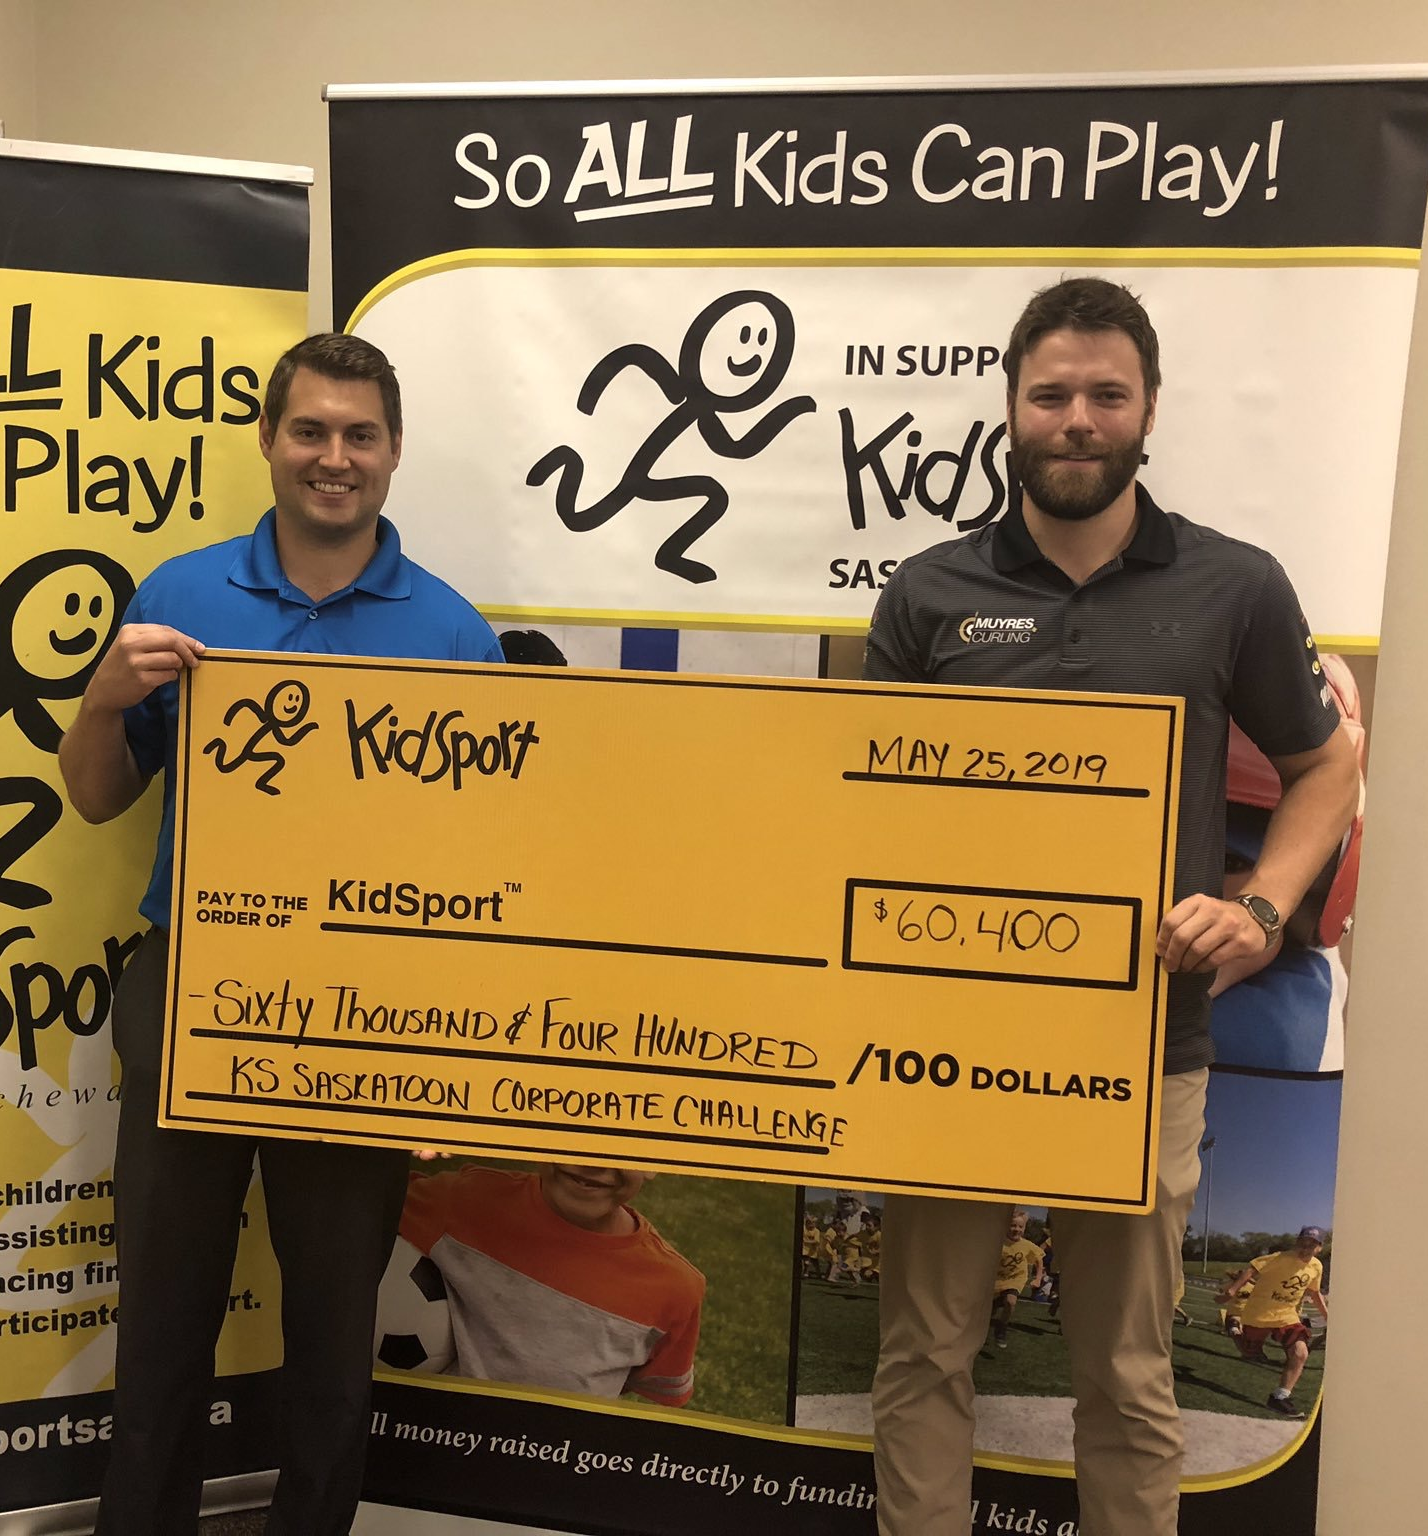 In Saskatoon this year Kirk presented a donation to KidSport for our 2018-2019 winnings. This helped KidSport attain their goal of $60,000 for the Saskatoon Corporate Challenge.